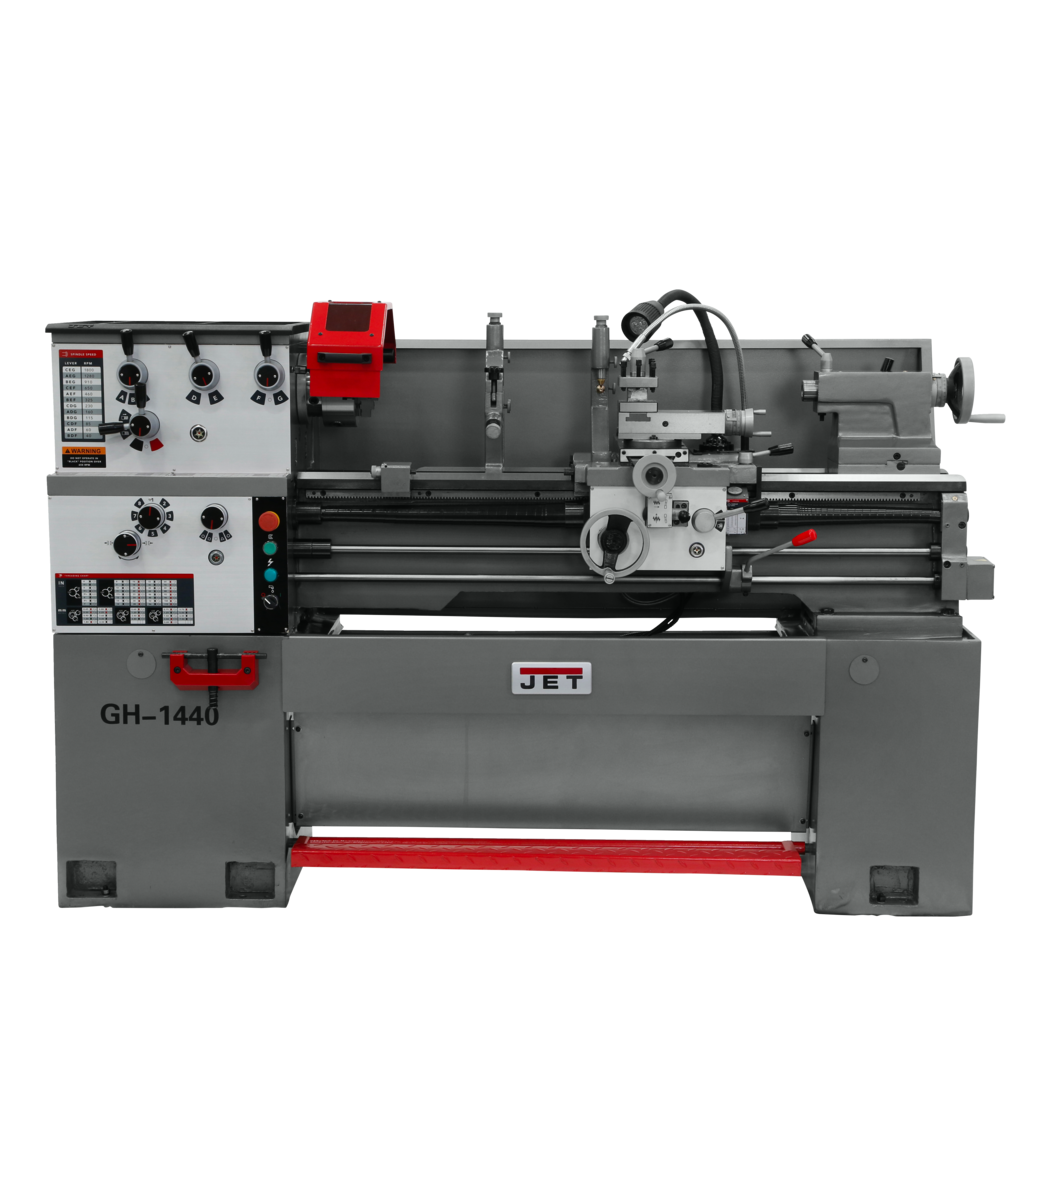 GH-1440-1 Lathe with Acu-Rite 203 DRO and Collet Closer